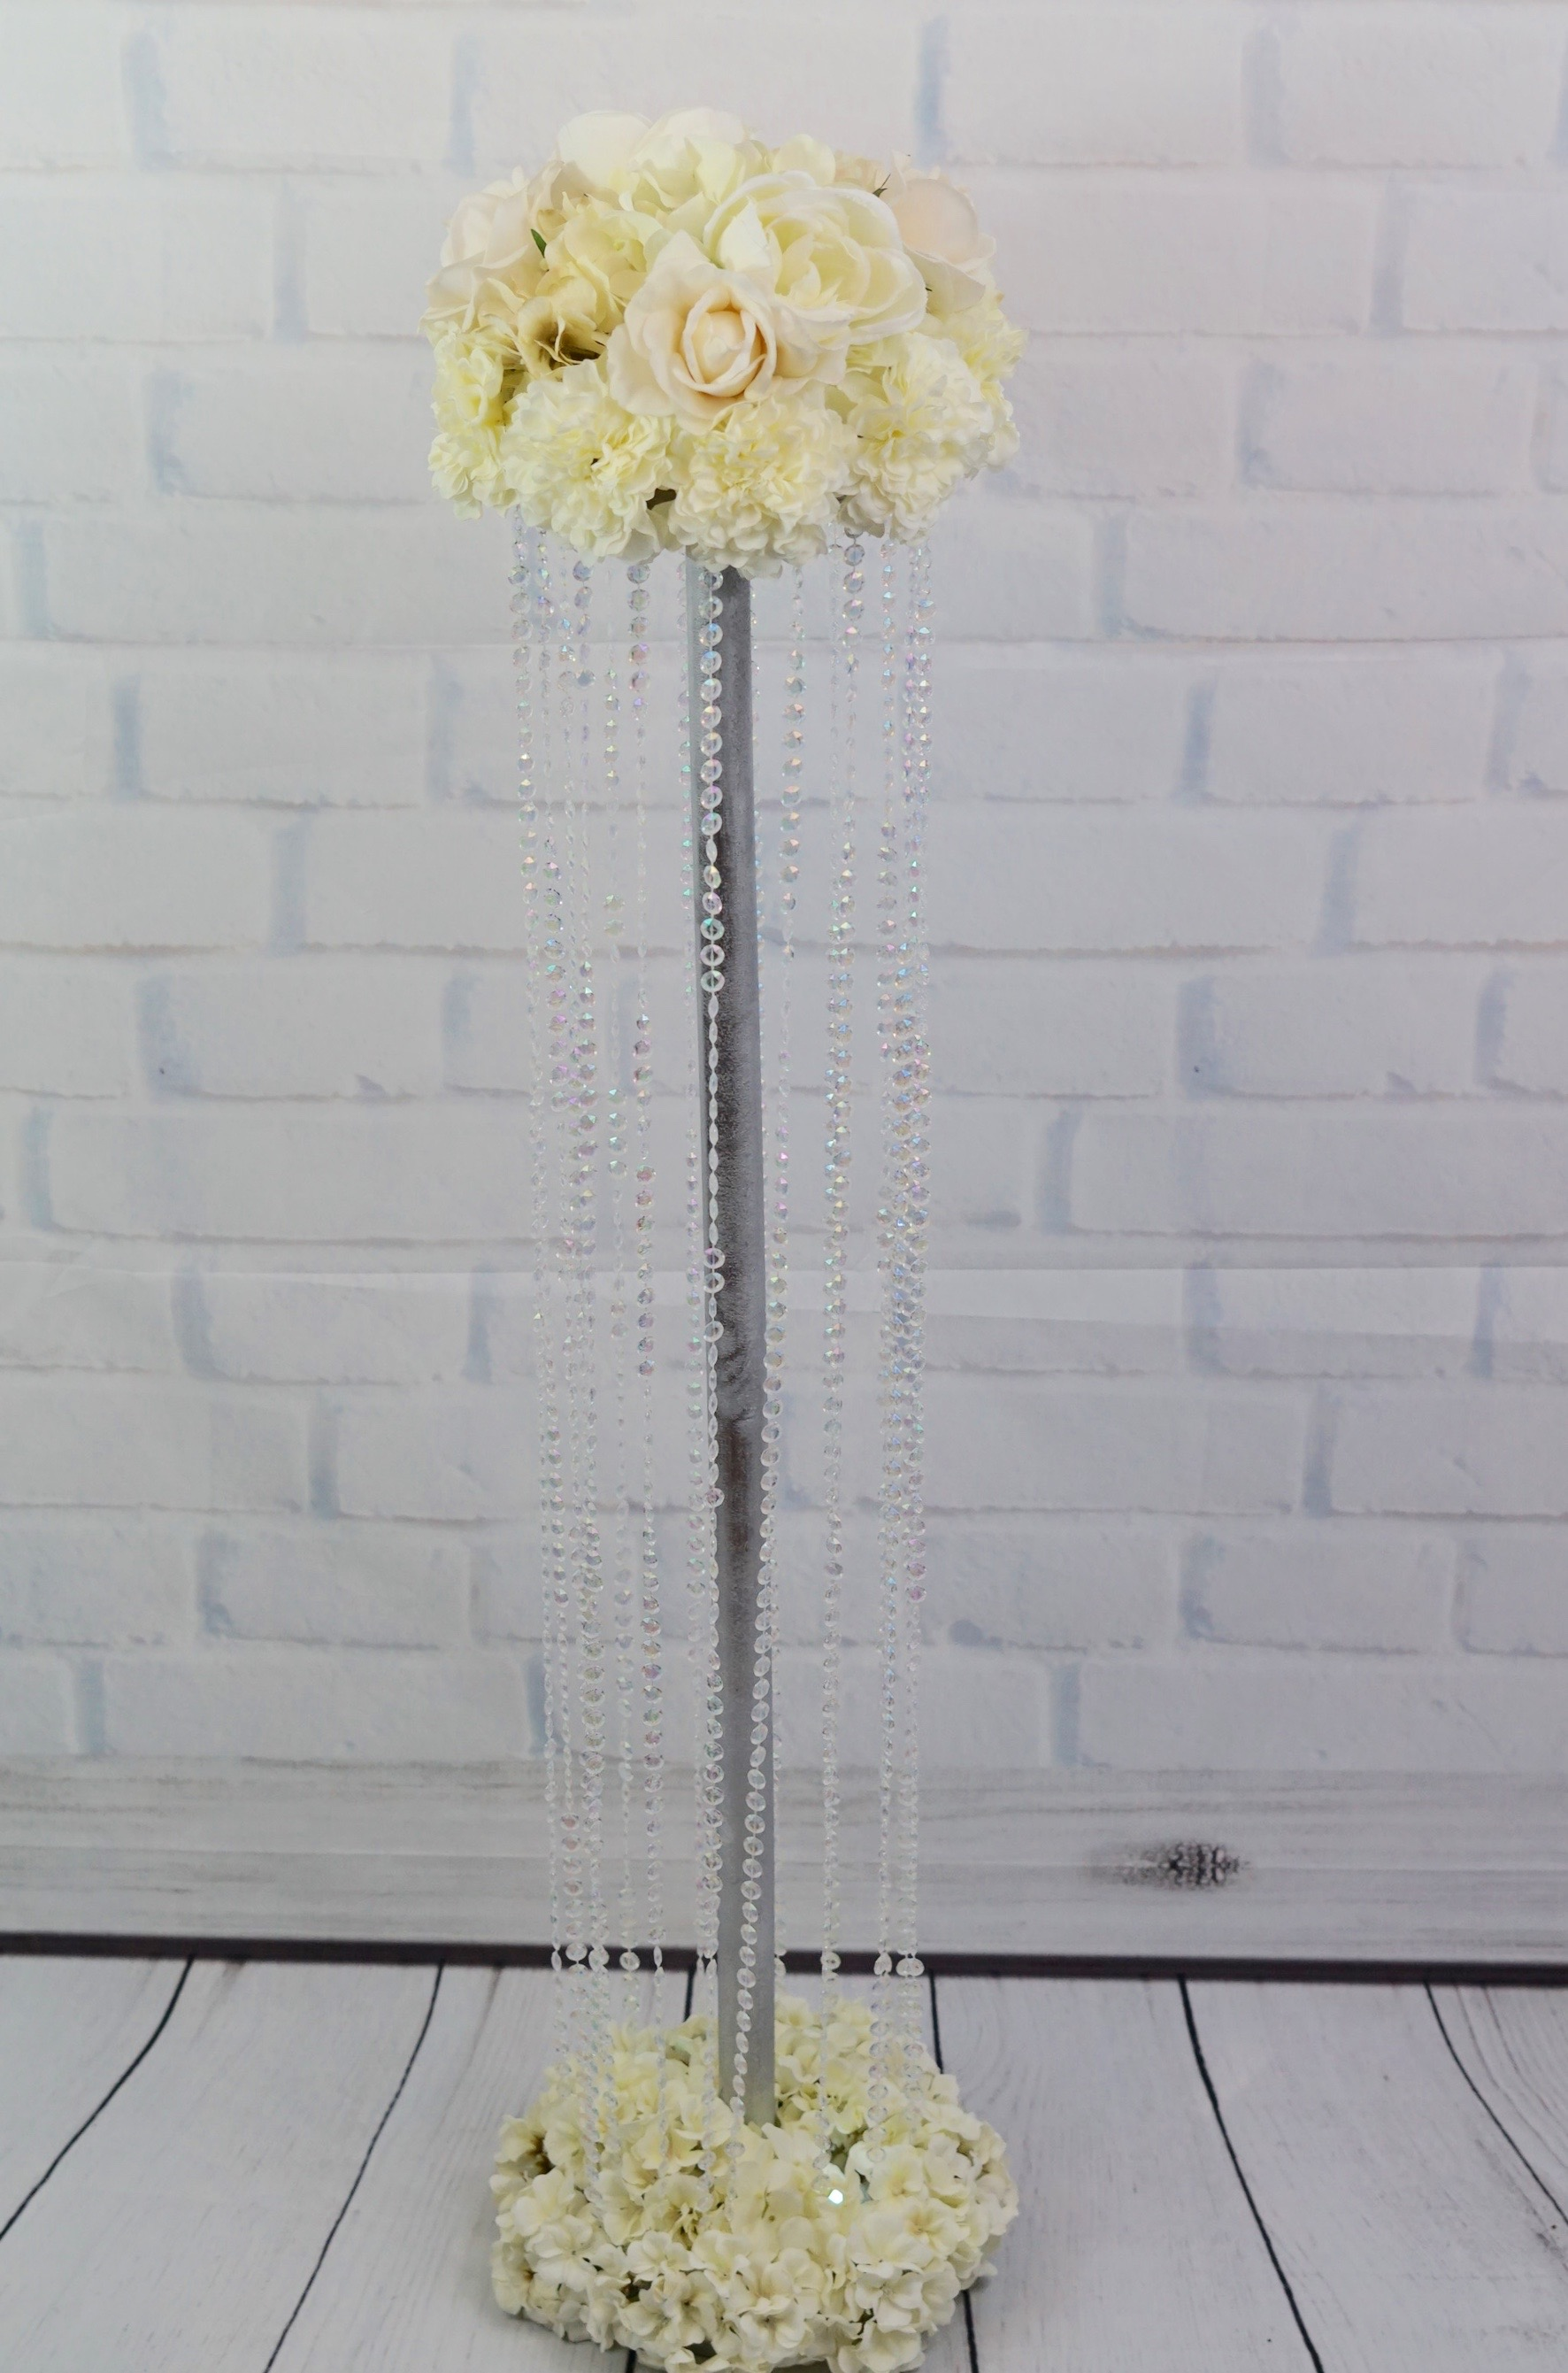 How To Make Diy Lighted Wedding Columns.Diy Inexpensive Wedding Aisle Pillars That Look Like A